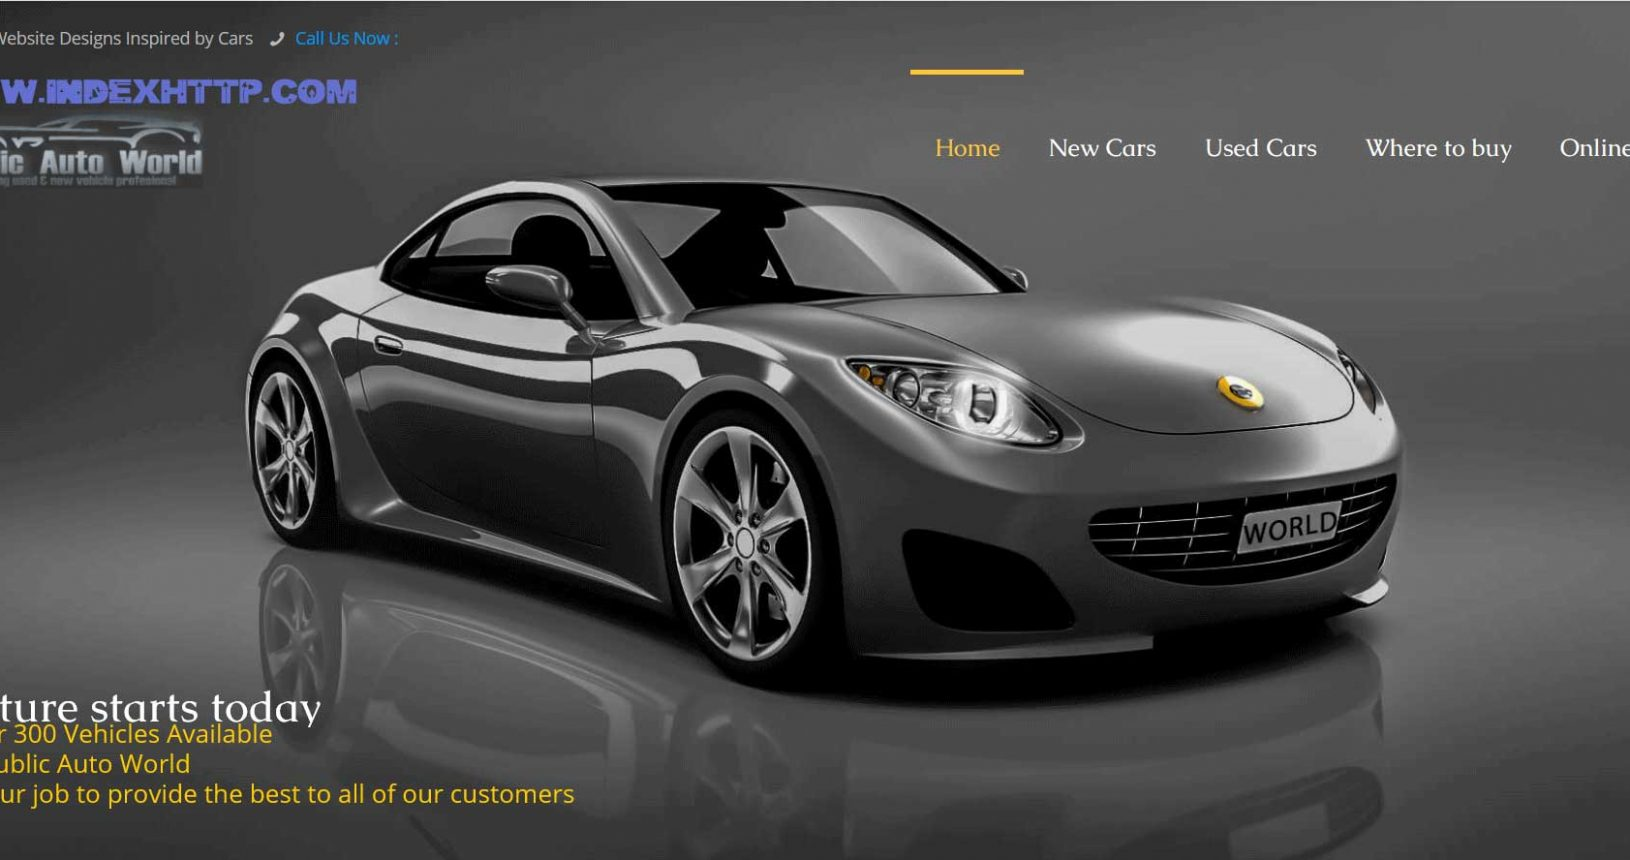 Great Automotive Website design for you www.Indexhttp.com